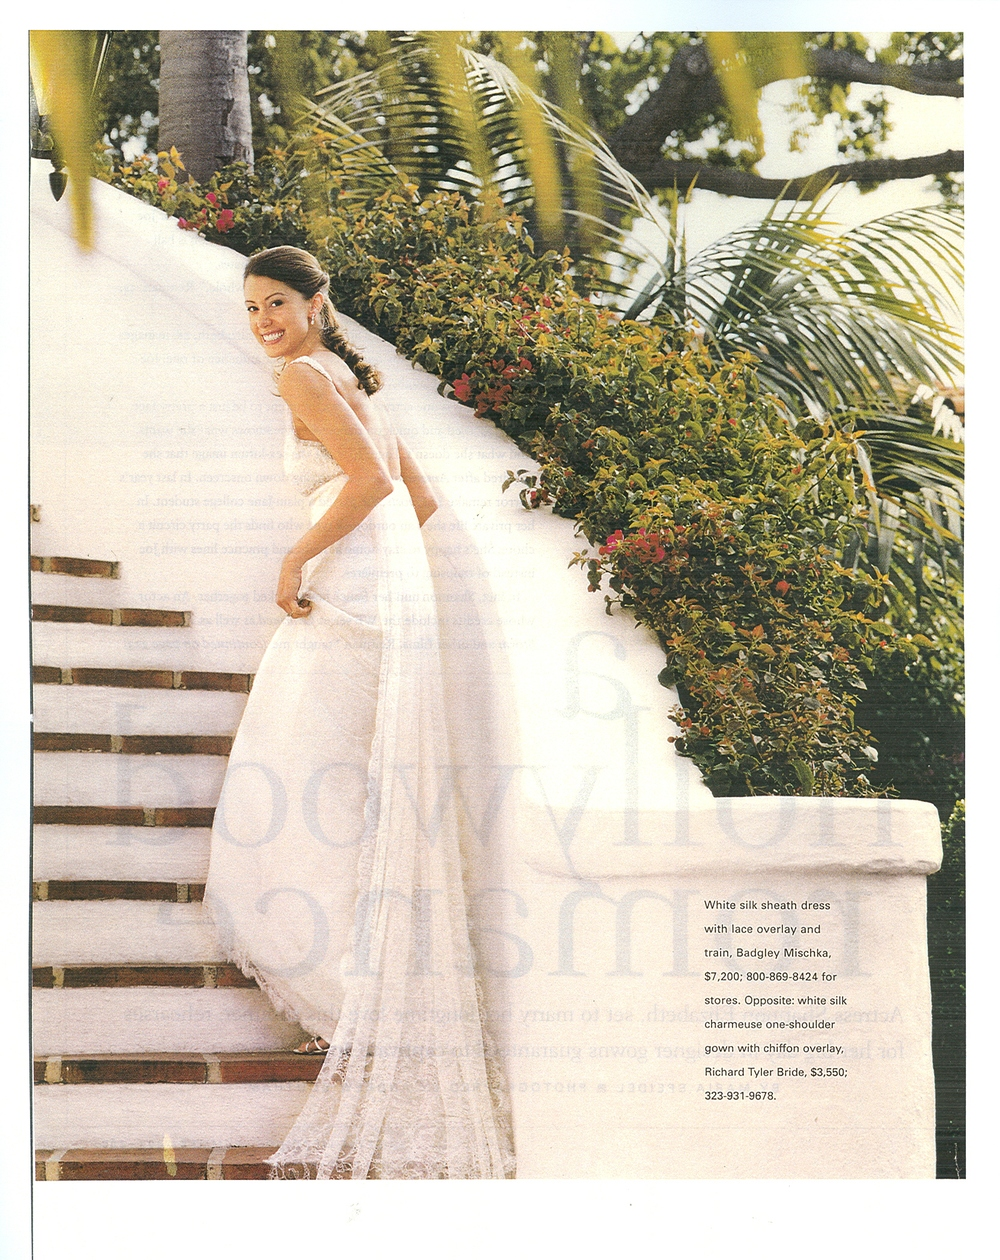 SE_InStyle Weddings_Summer 2002_4.jpg